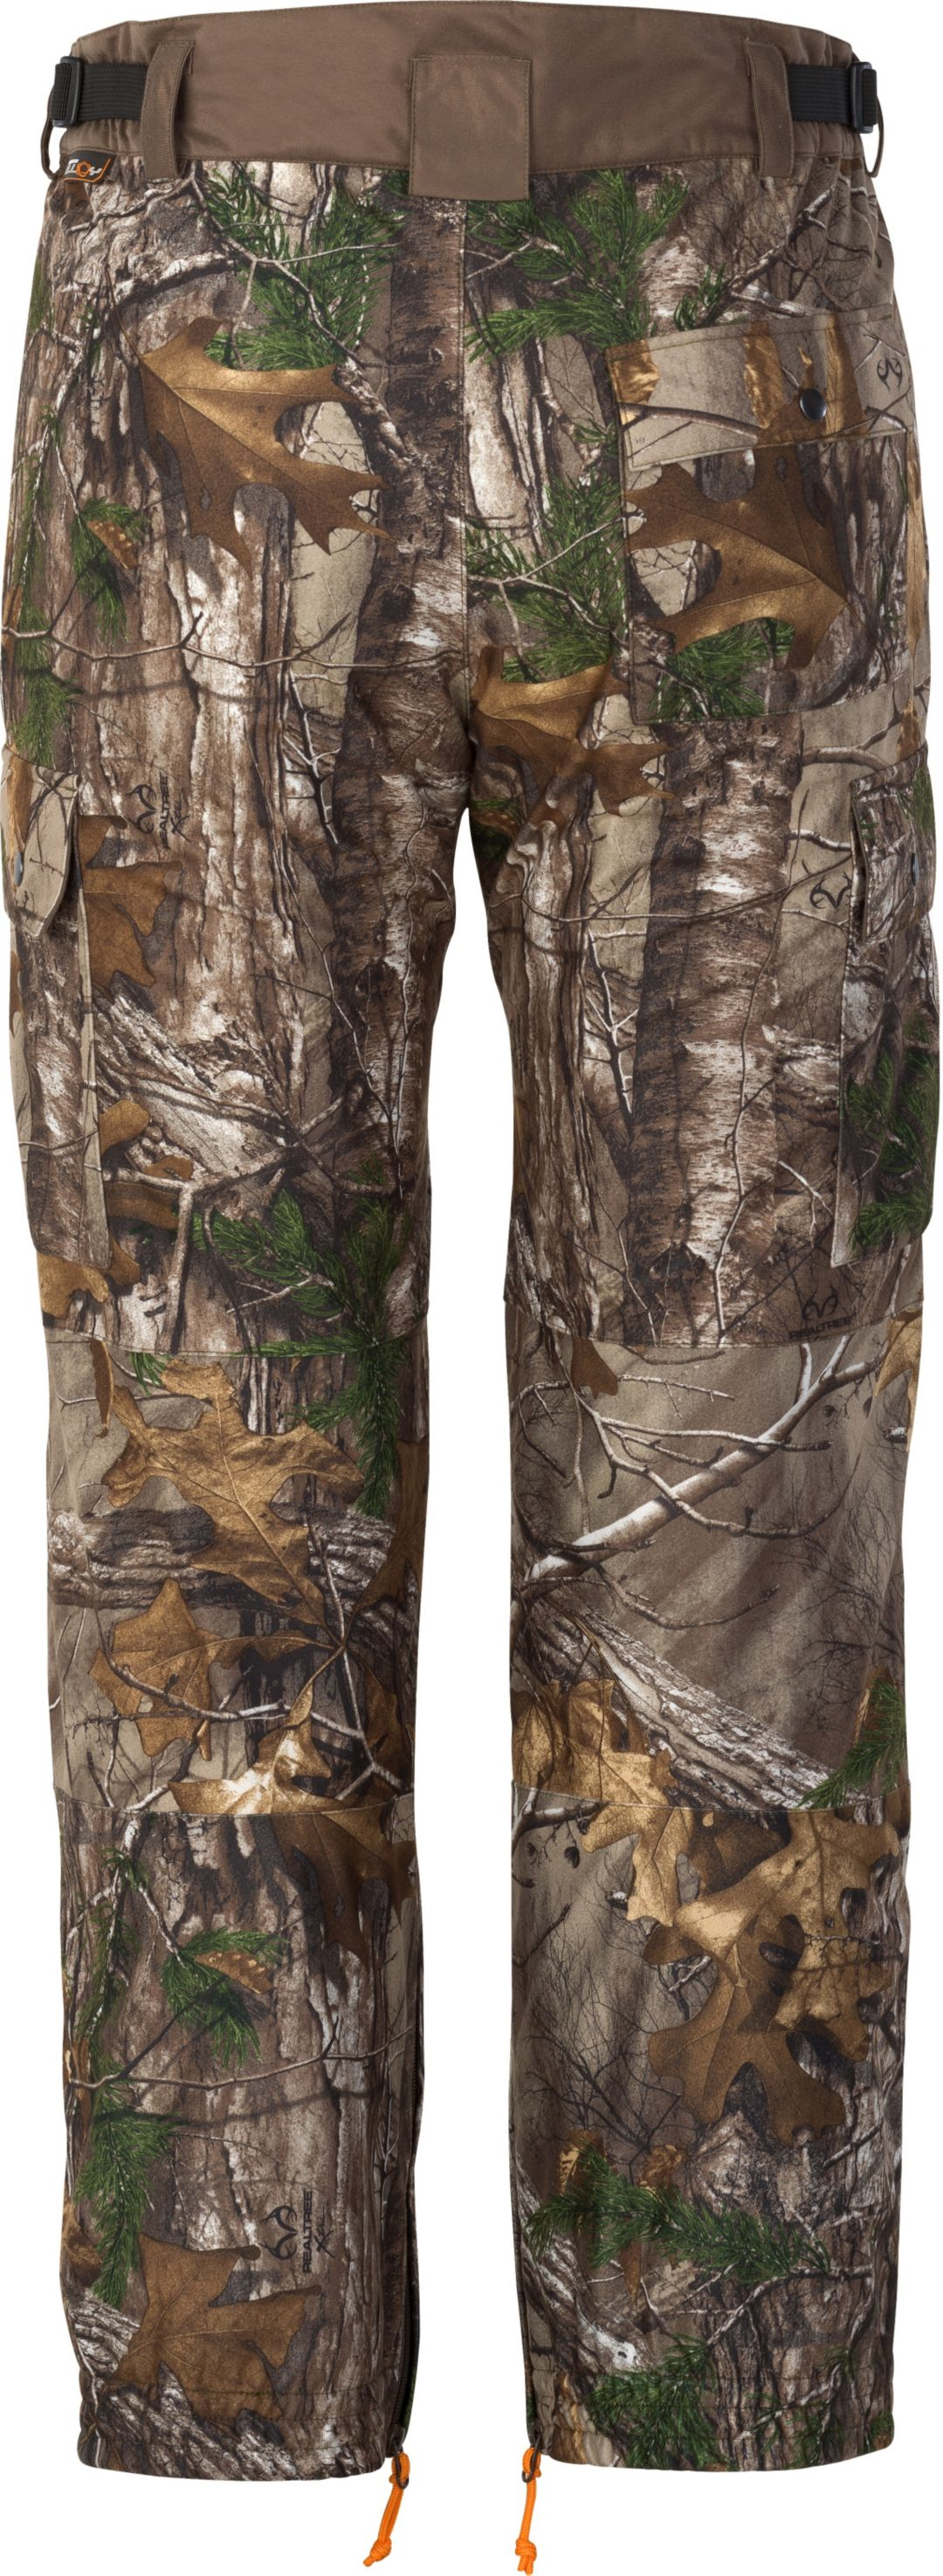 ef78dcfc5b1bc ScentLok Men's Cold Blooded Hunting Pants. noImageFound. Previous. 1. 2